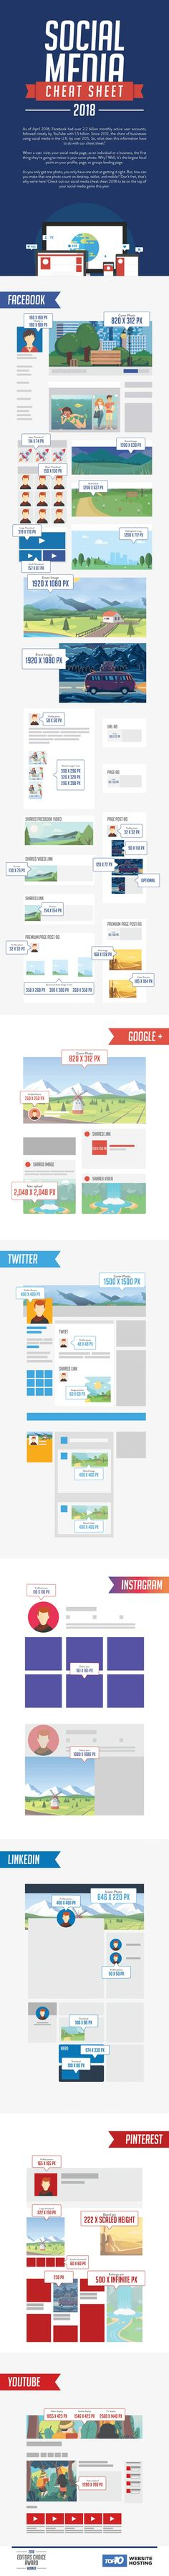 Social Media Image Size Cheat Sheet 2018 [Infographic] | Social Media Today